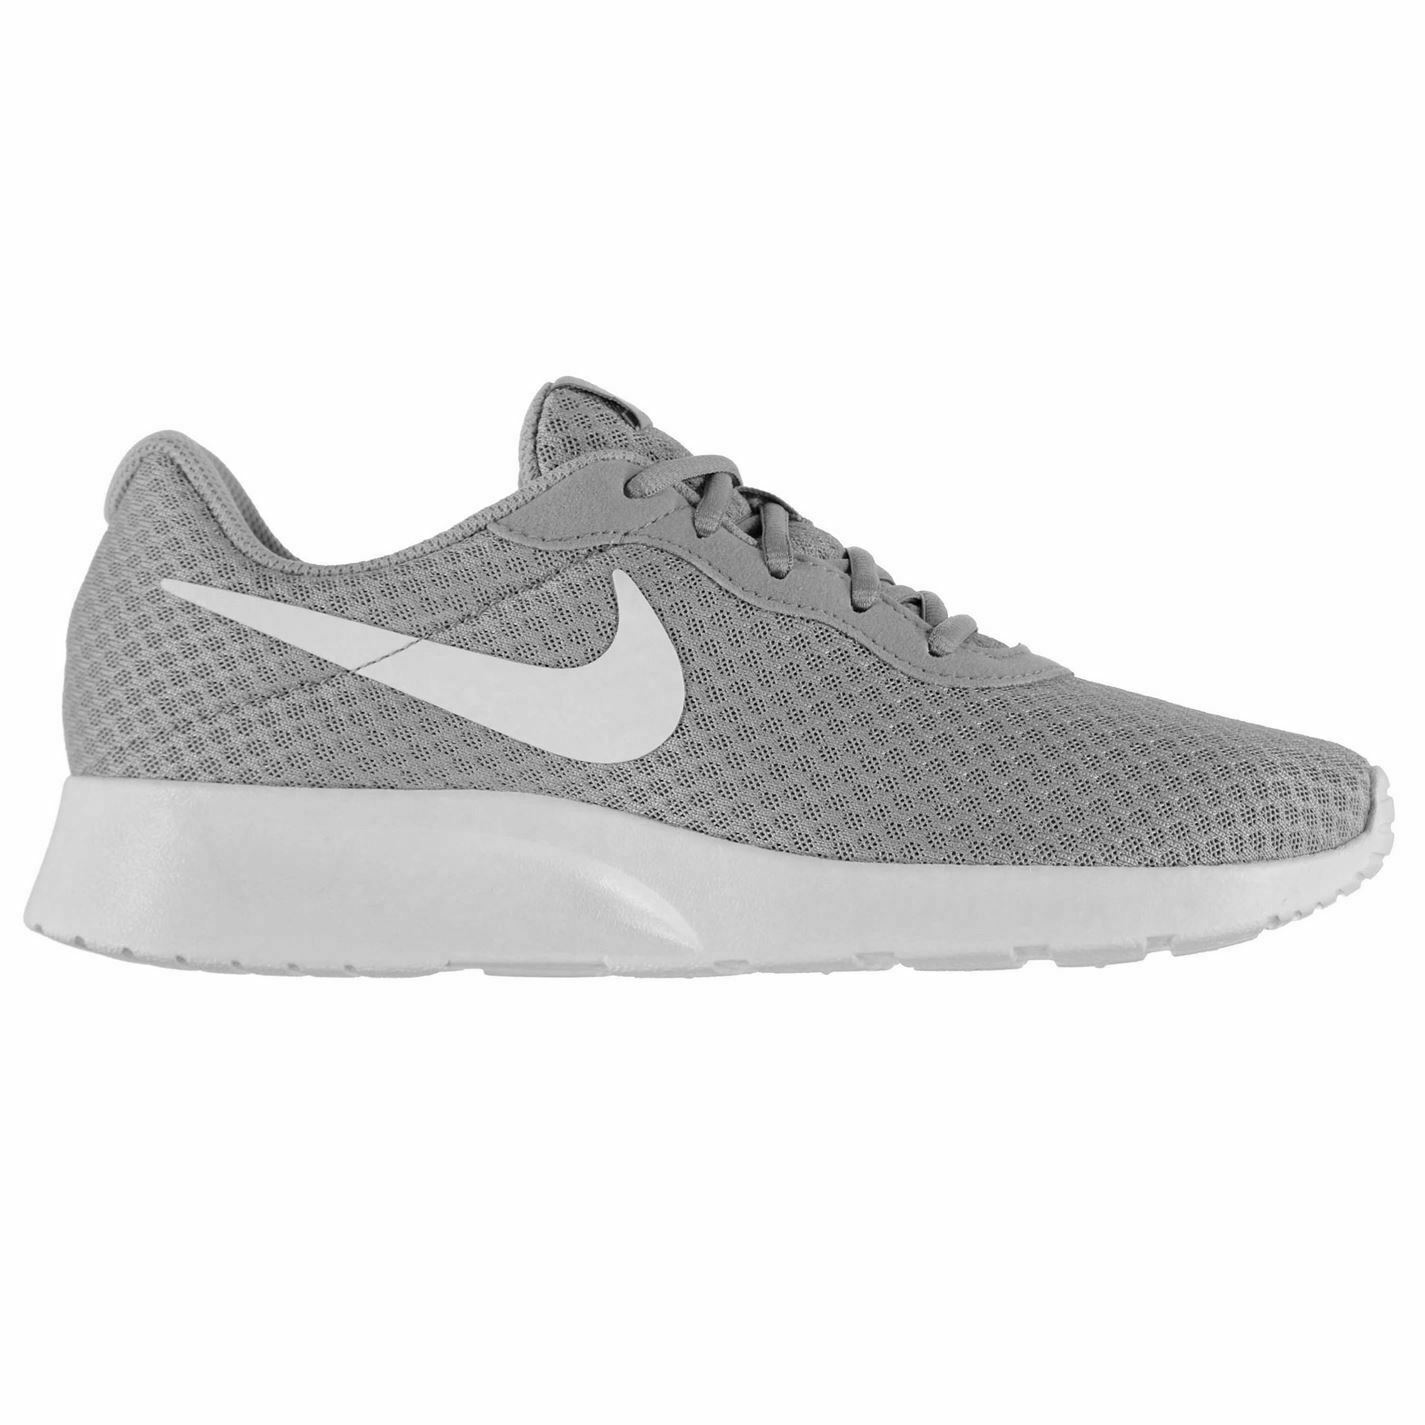 Nike Tanjun Training shoes Mens Grey White Sports Fitness Trainers Sneakers